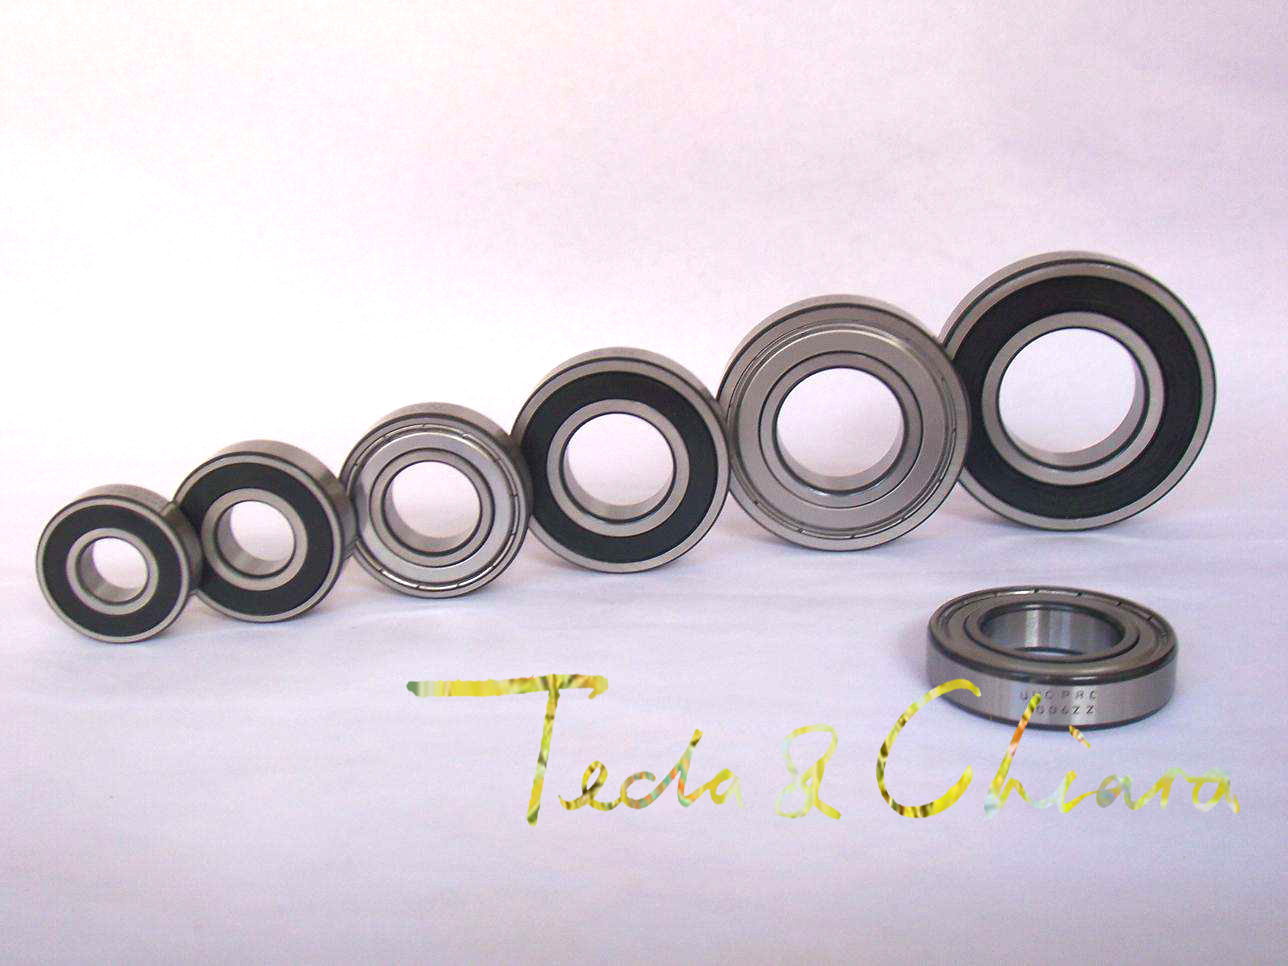 6901 6901ZZ 6901RS 6901-2Z 6901Z 6901-2RS ZZ RS RZ 2RZ Deep Groove Ball Bearings 12 x 24 x 6mm High Quality free shipping 25x47x12mm deep groove ball bearings 6005 zz 2z 6005zz bearing 6005zz 6005 2rs